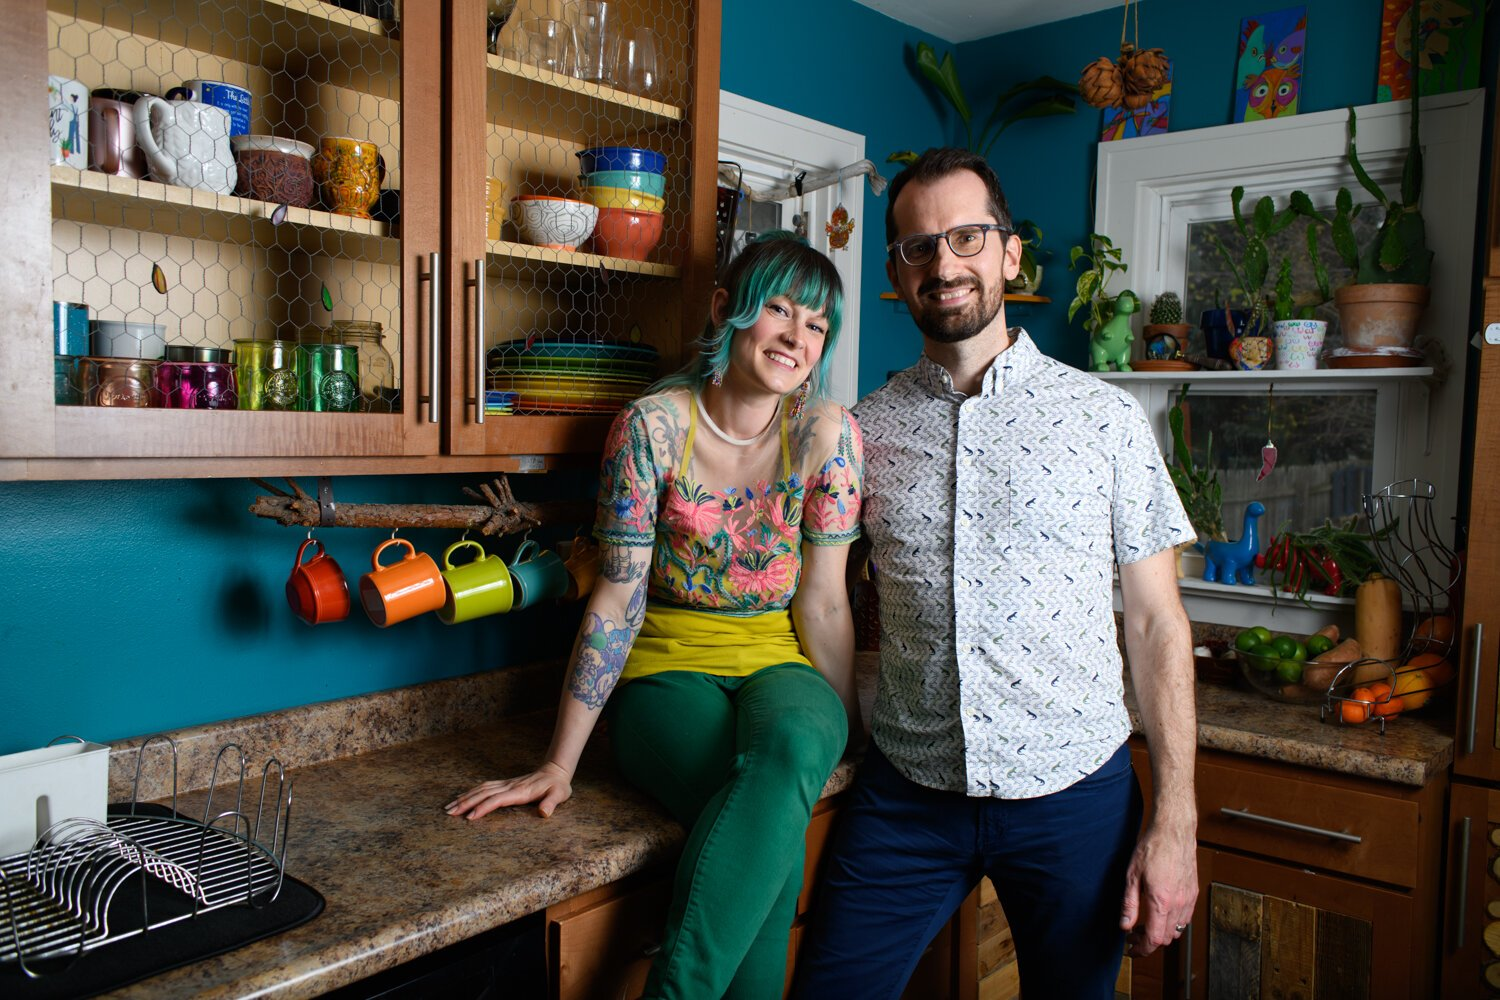 Lyndsy Rae Porter, left, and Ben Porter, in their kitchen.